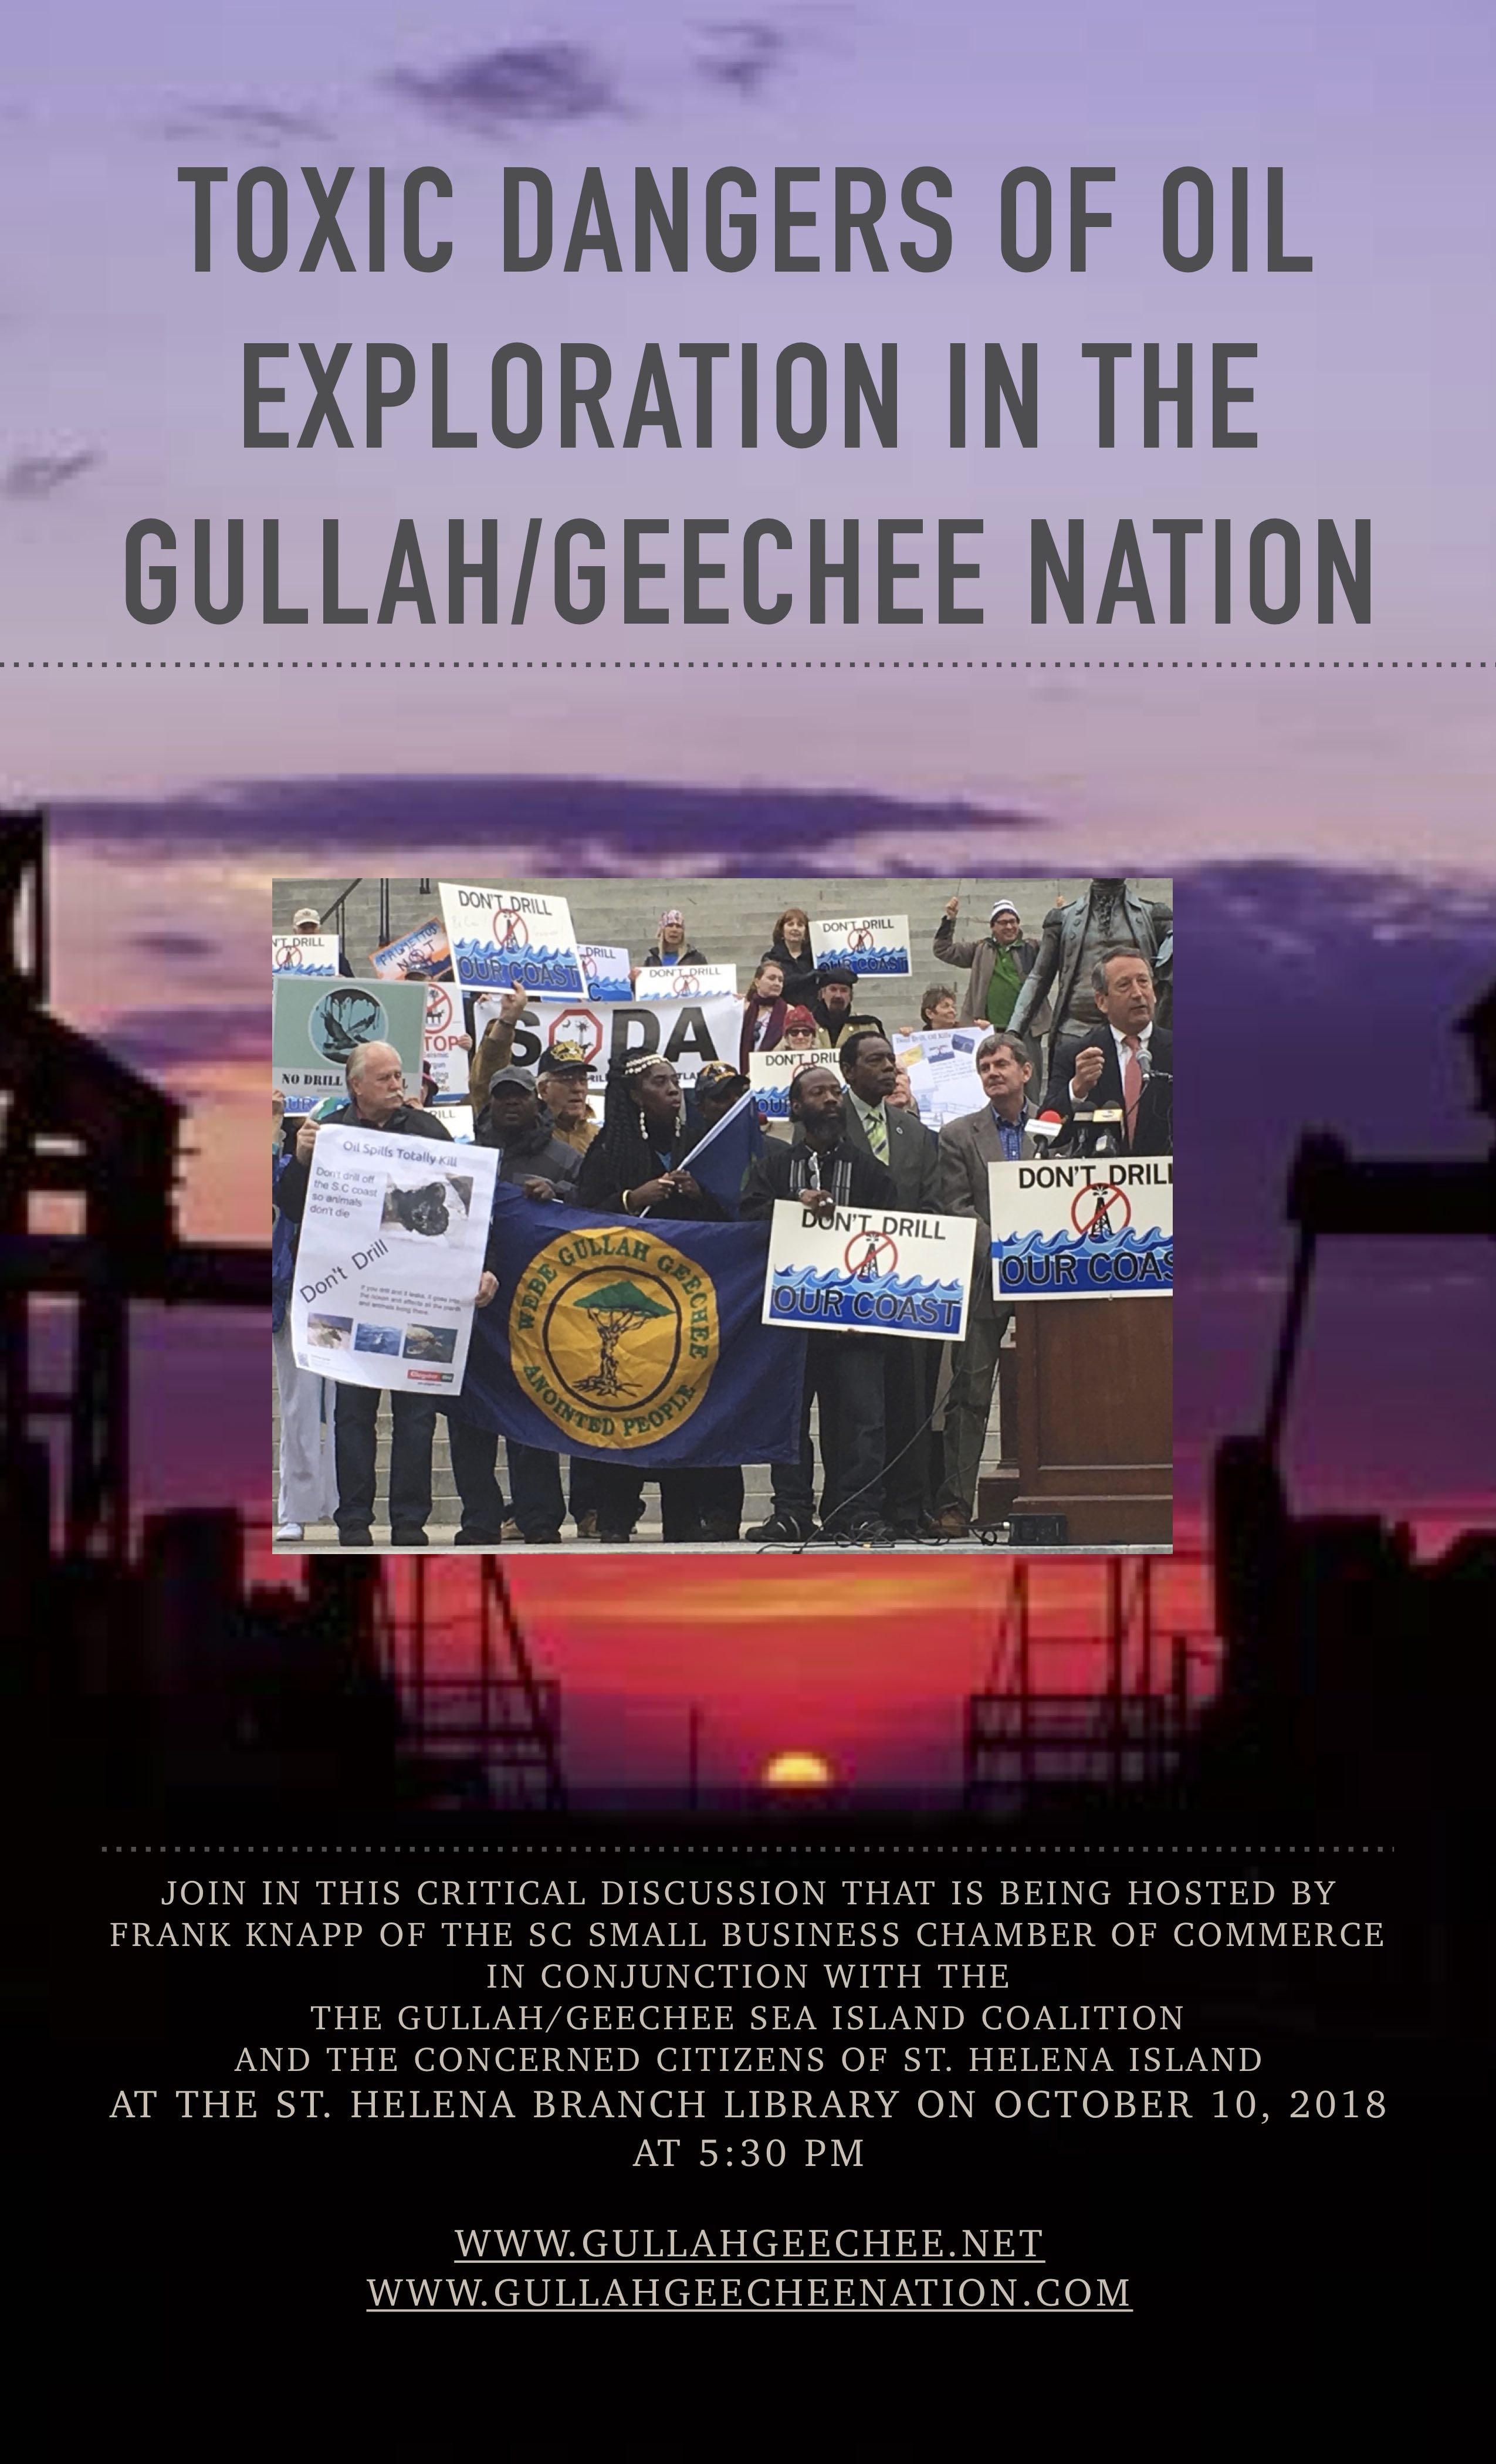 Toxic Chemicals and Oil Exploration in the Gullah/Geechee Nation Flyer